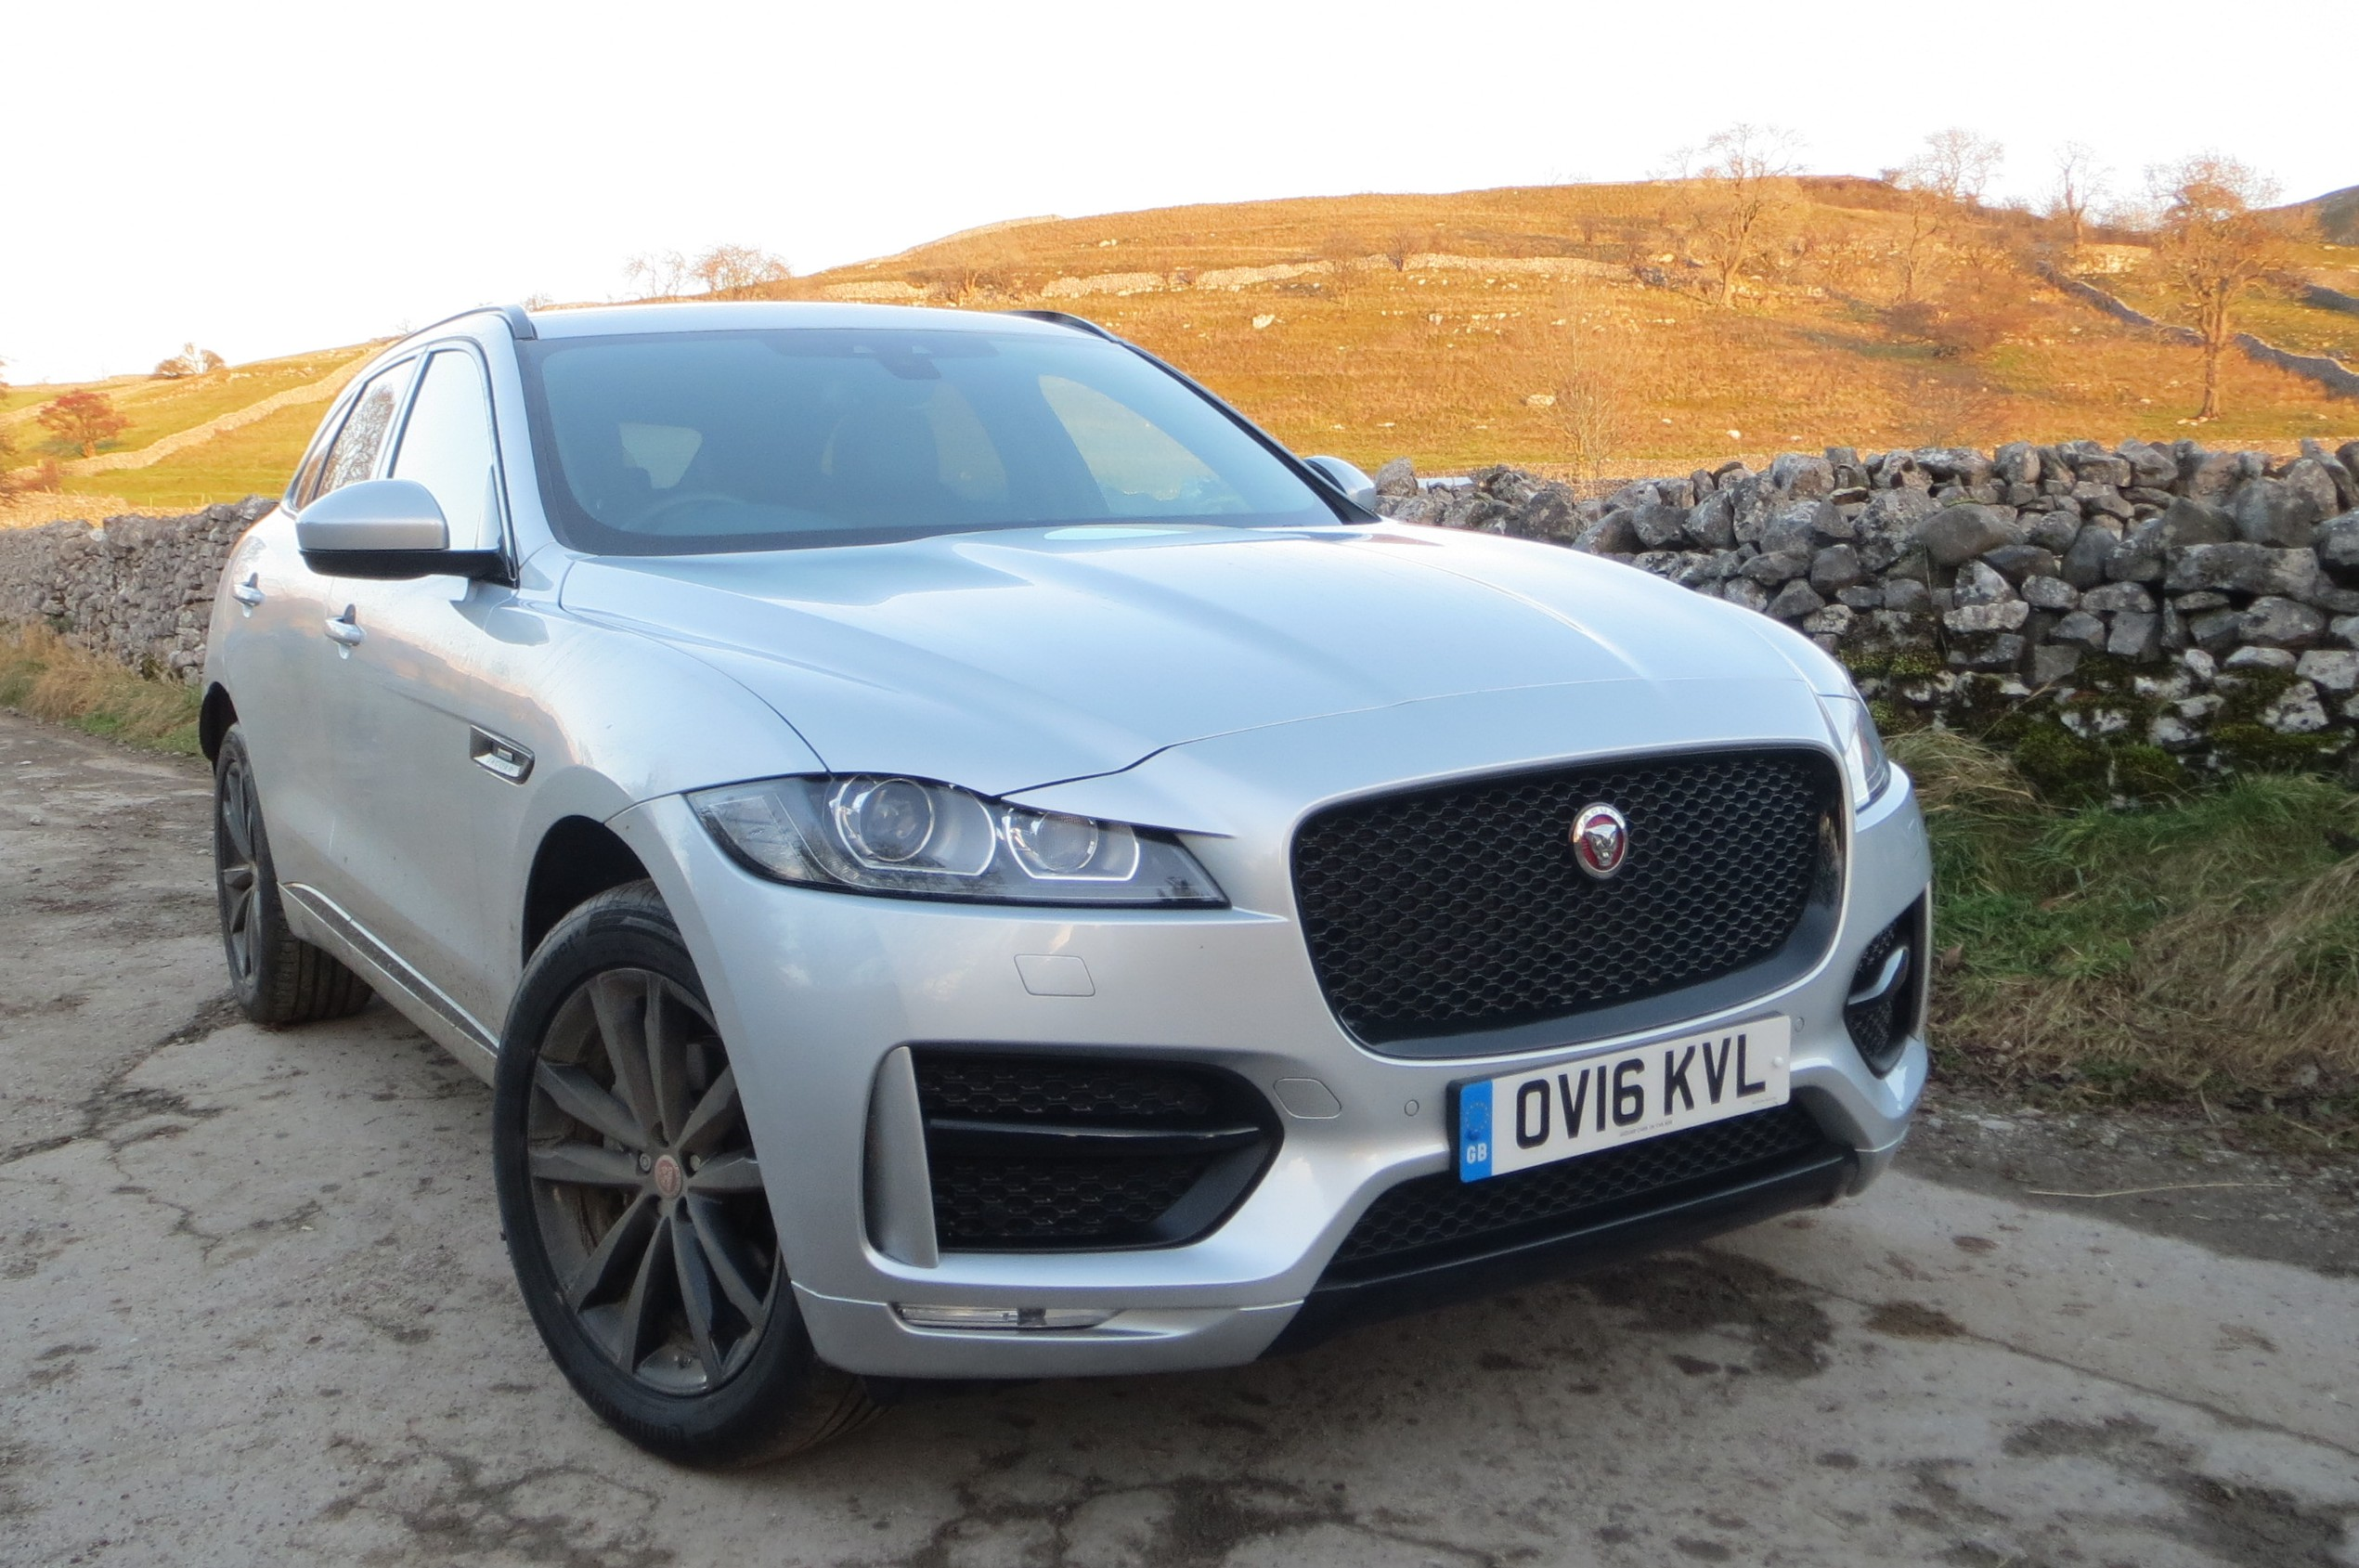 e jag for morning if sense introducing to around you is all are jaguar phil an affordable in it have the pace drive a suv of and s just options version makes consider market your budget new